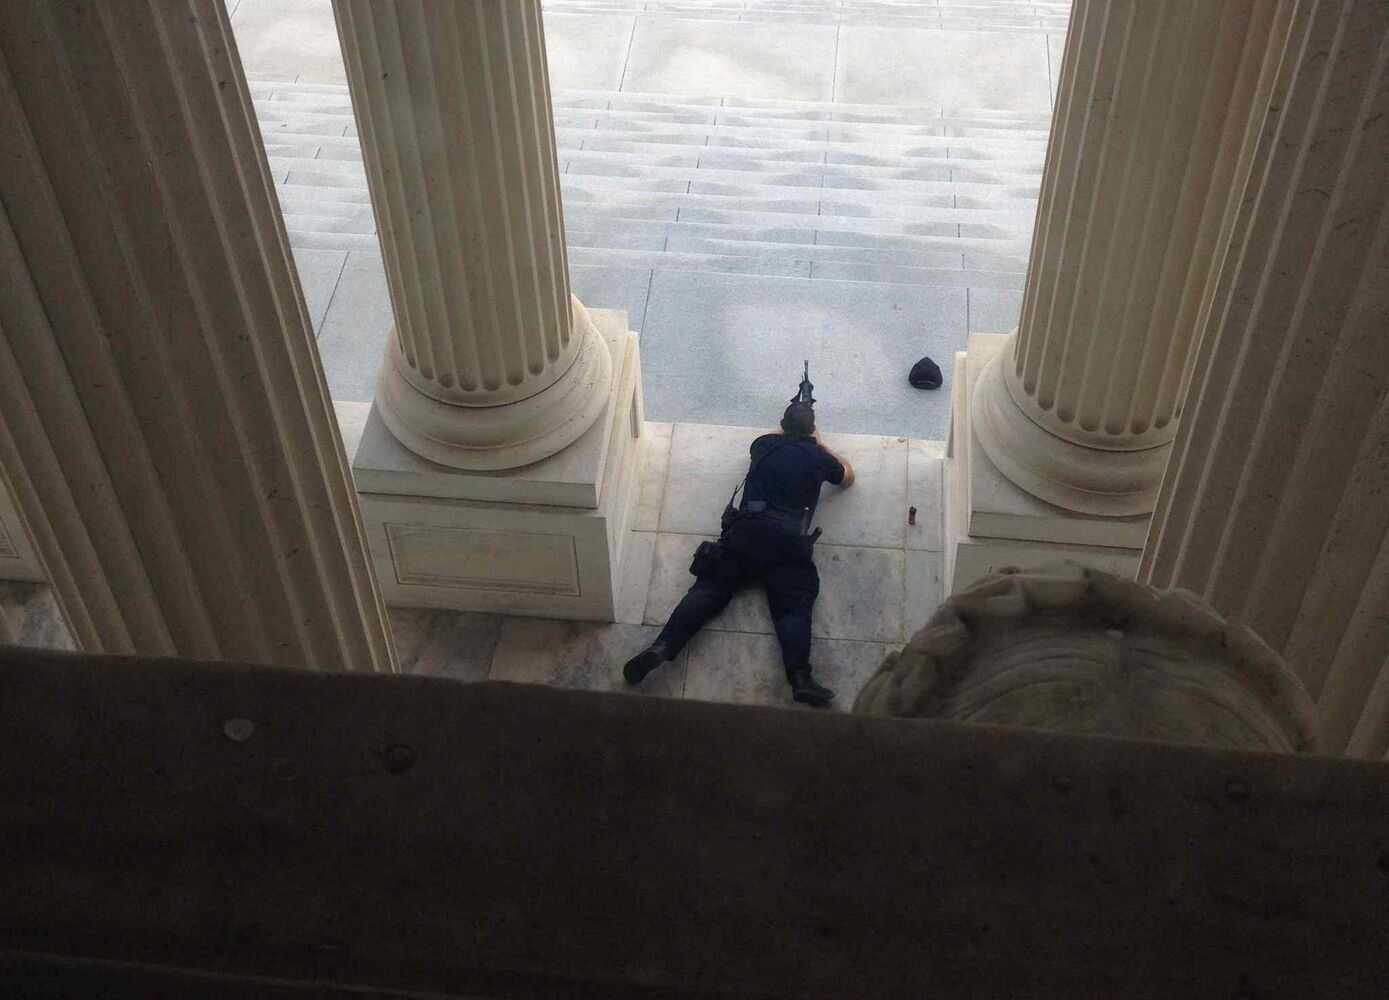 A U.S. Capitol police officer lies on the steps of the Senate with a gun drawn in response to a report of shots fired Thursday. The entire complex was locked down. (Alex Leary / The Associated Press)